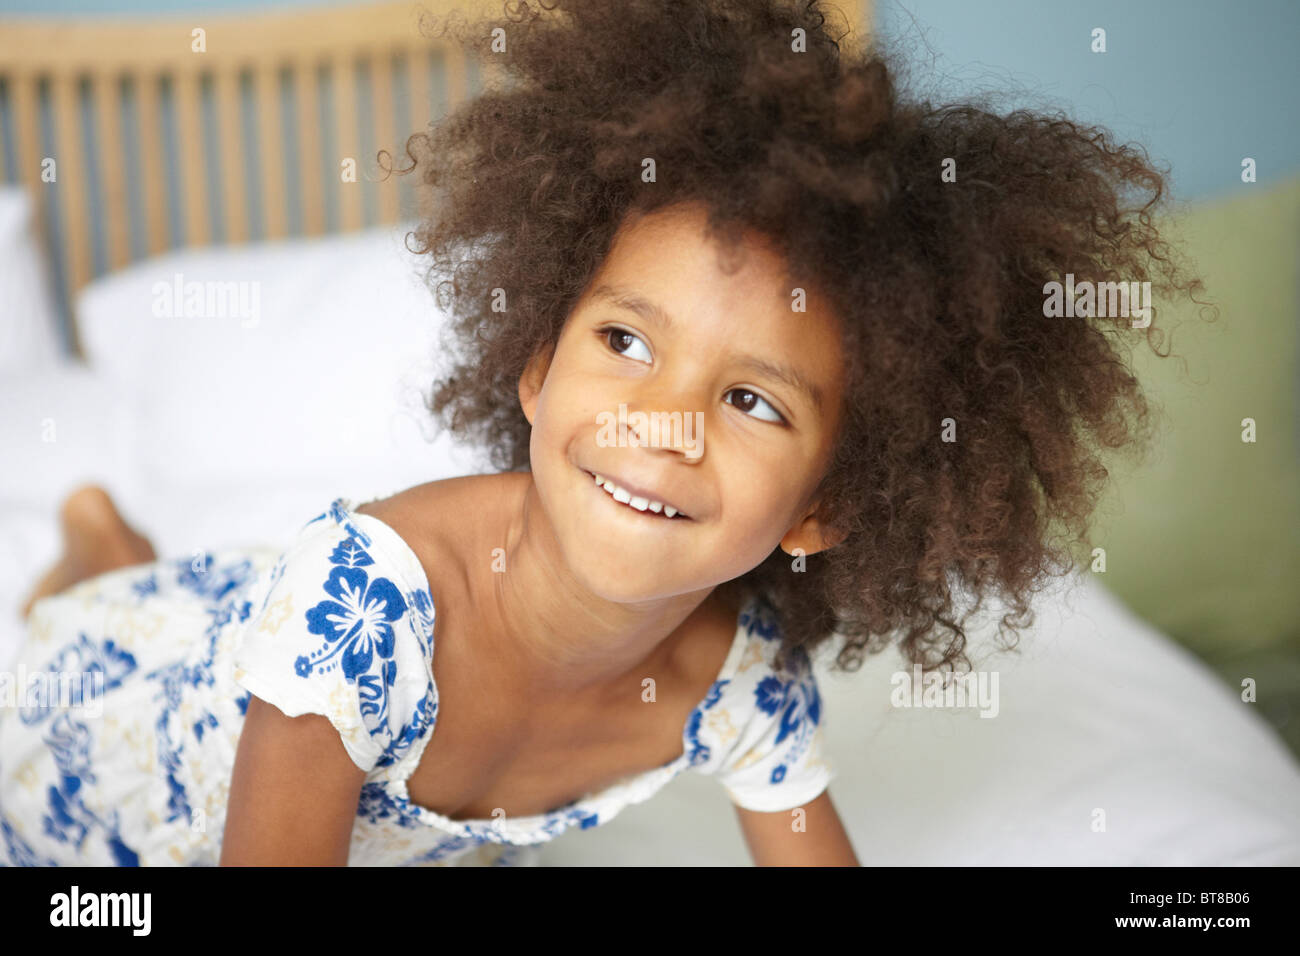 young mixed race girl (6) on bed looking mischievous in blue and white flower dress, leaning forward. - Stock Image